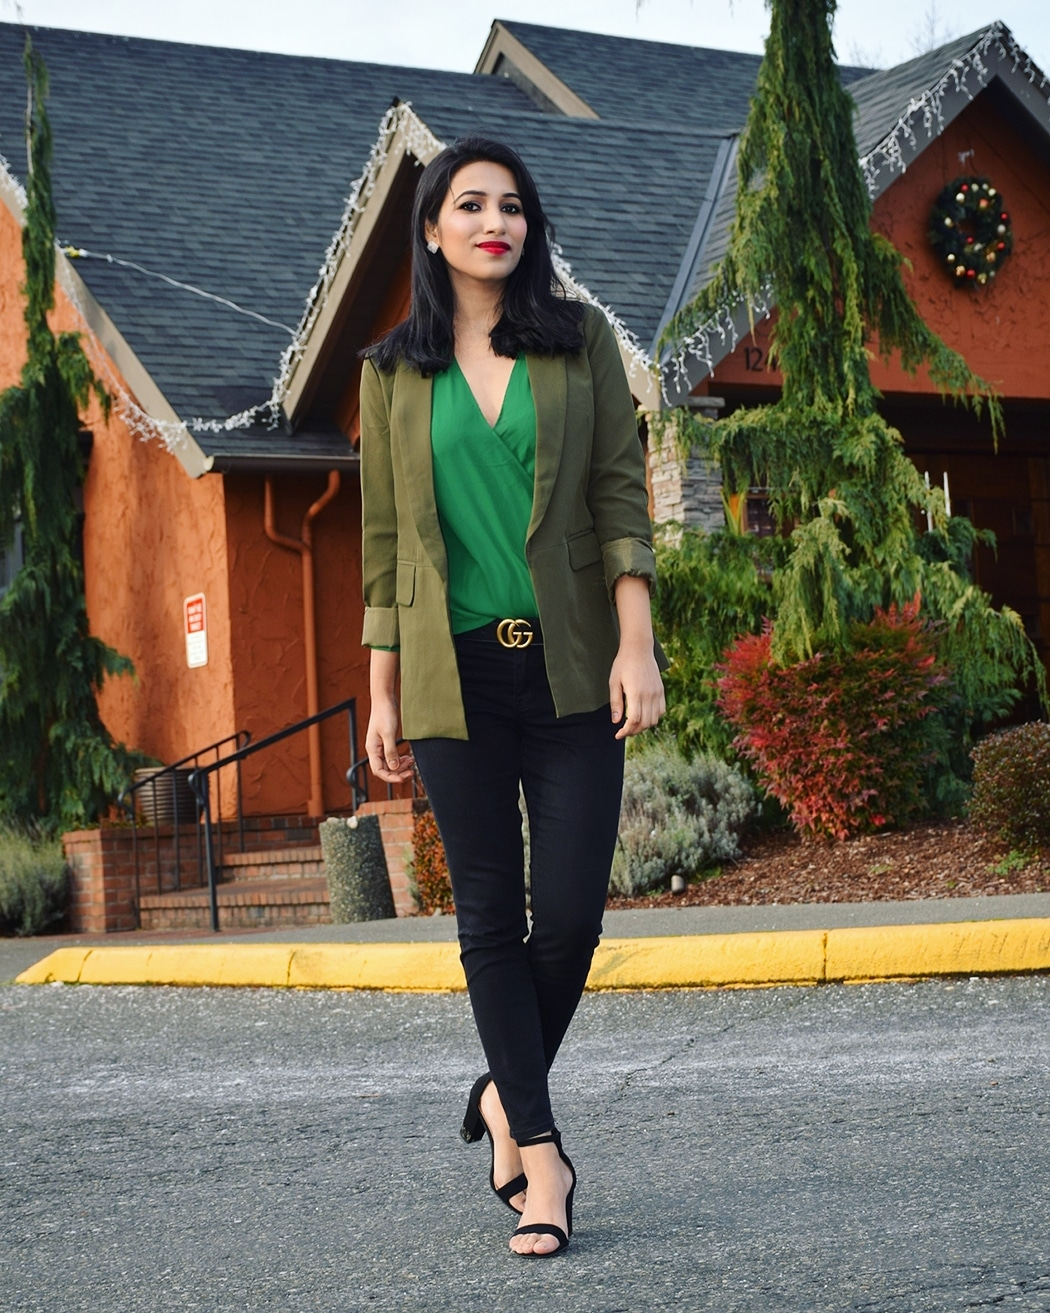 https://www.lookbookstore.co/products/army-green-lapel-side-pocket-slim-blazer